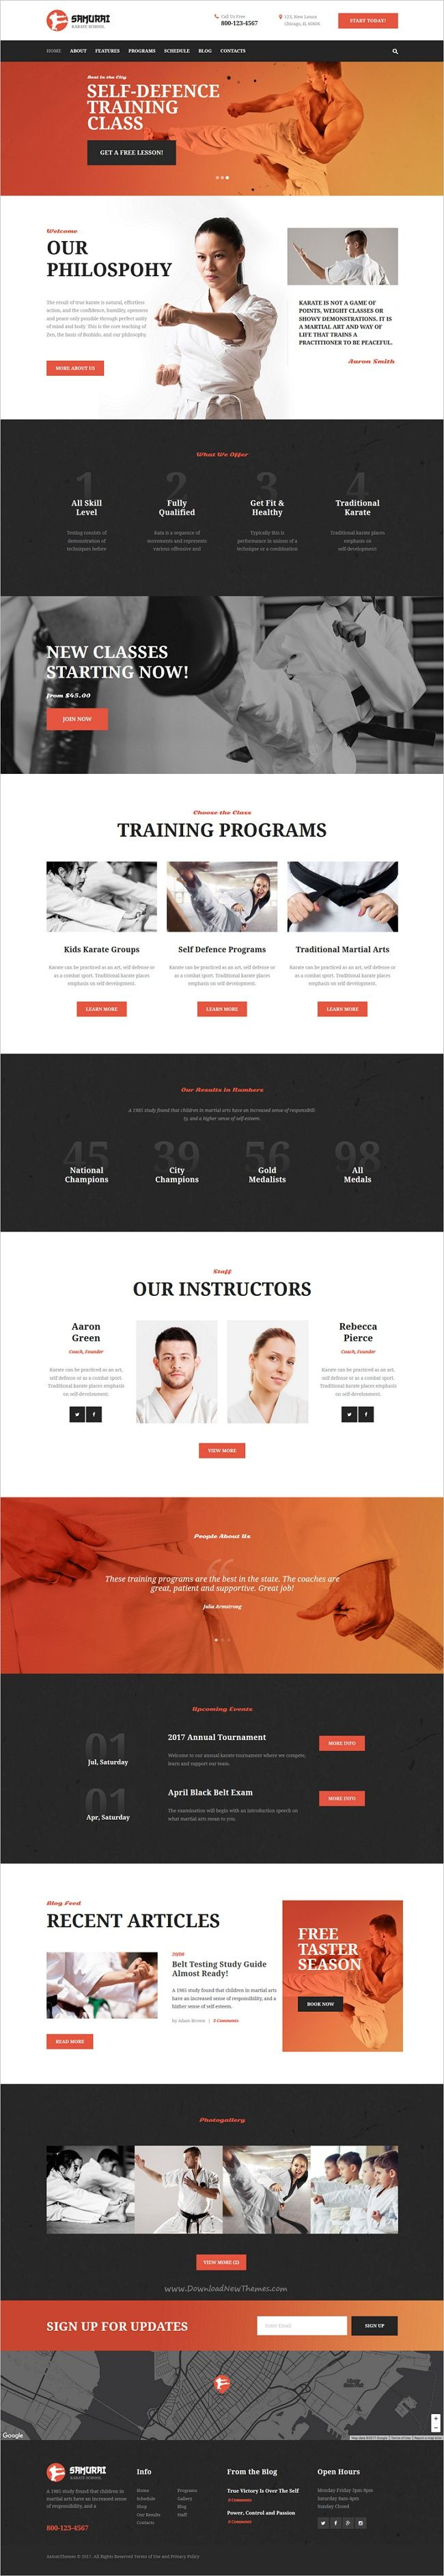 Samurai is modern and elegant design responsive 3in1 #WordPress theme for #webdev sports industry, #martial arts, #karate school, fitness clubs or personal trainers website download now➩ https://themeforest.net/item/samurai-karate-school-and-fitness-center/19235121?ref=Datasata